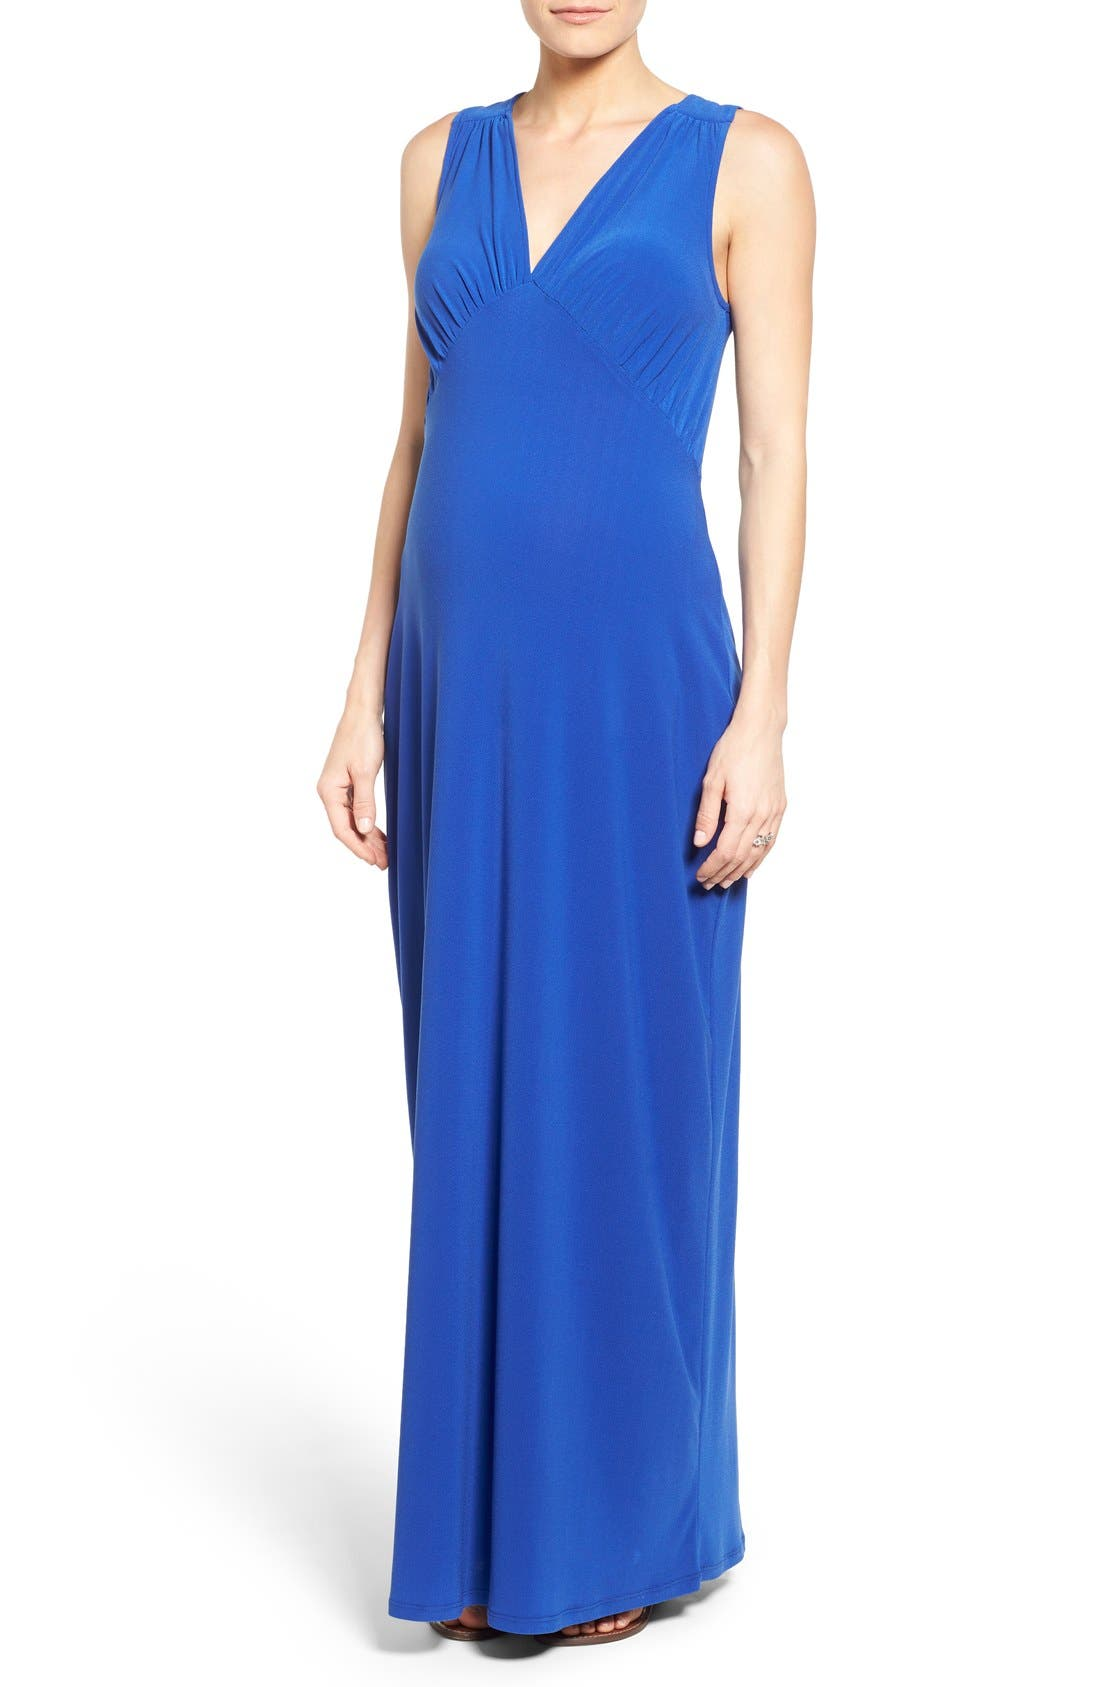 Leota 'Isabella' V-Neck Maternity Maxi Dress